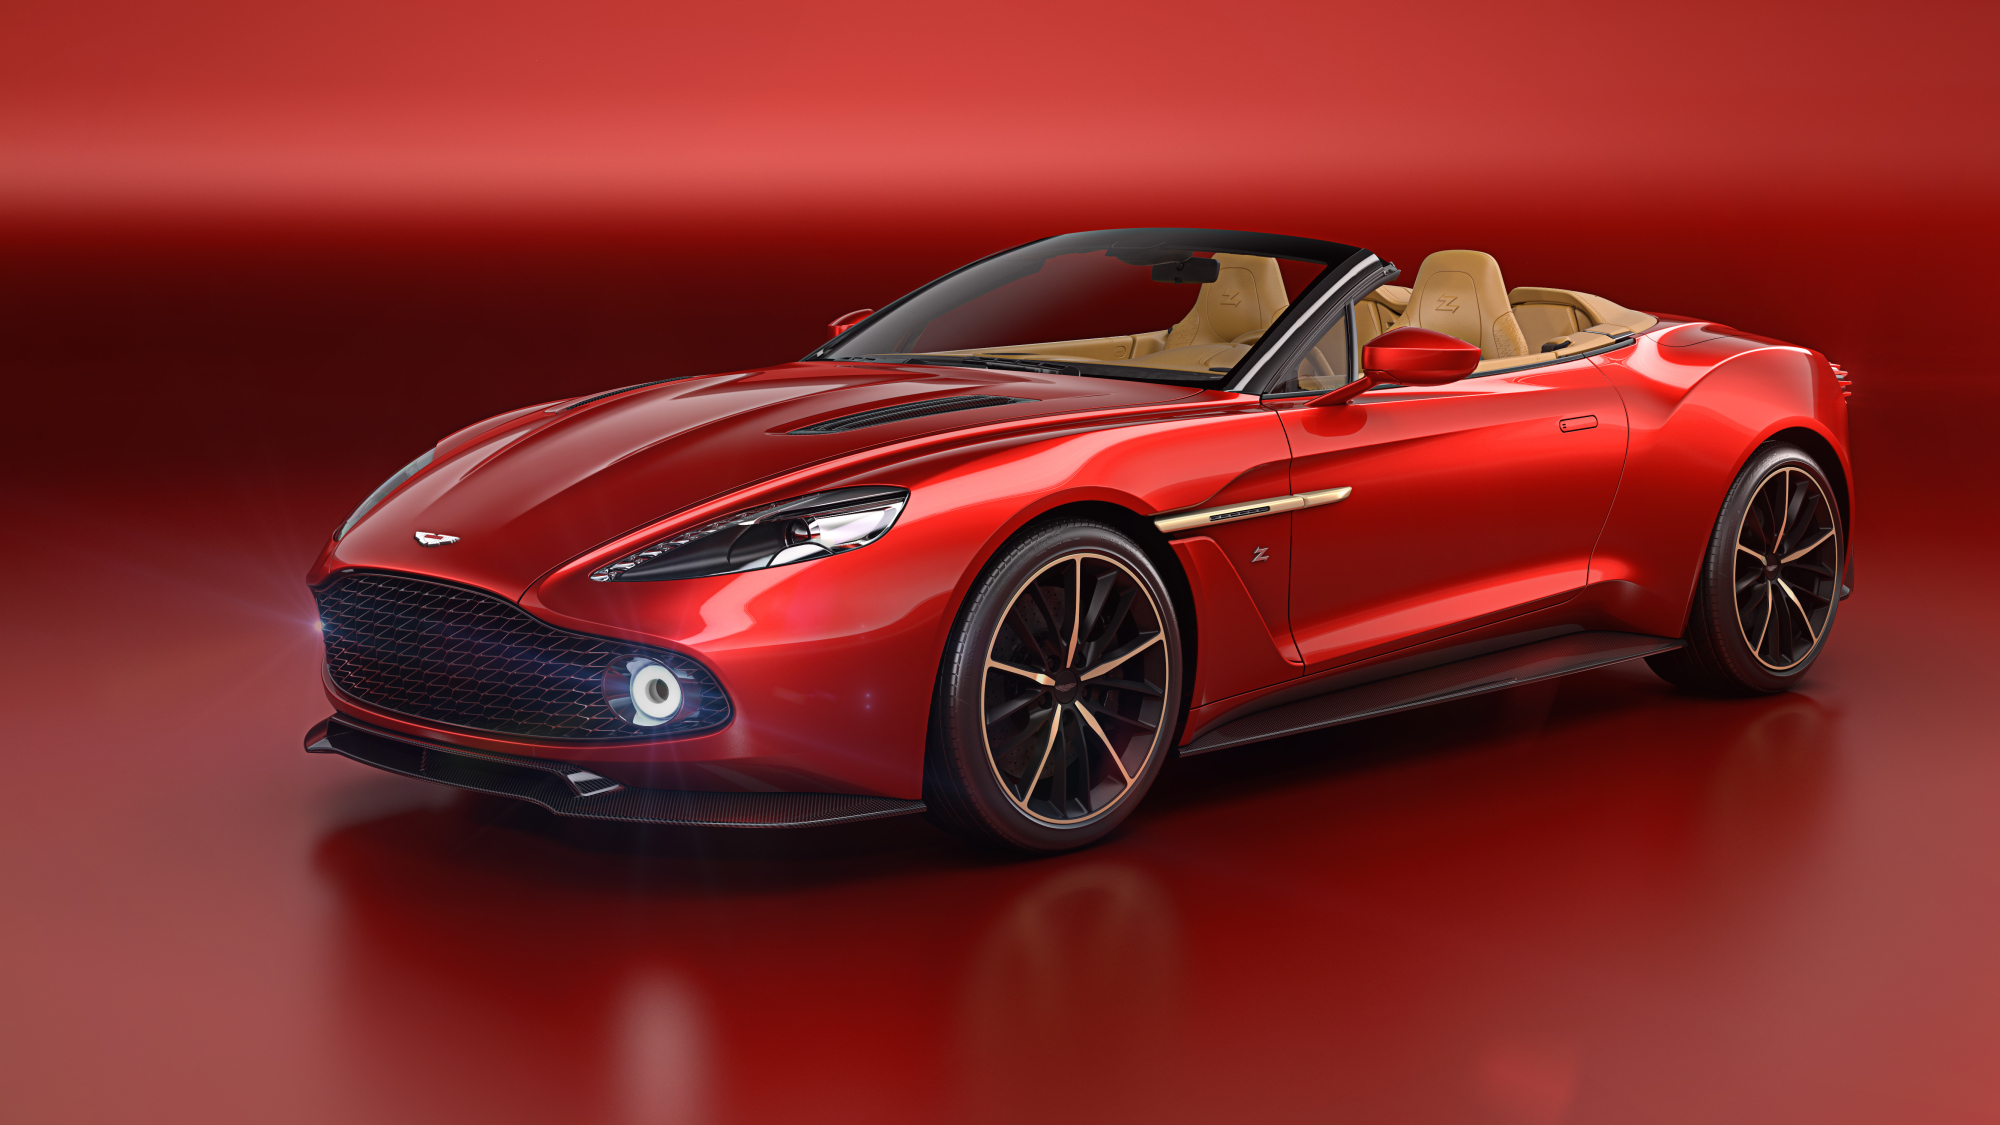 Aston Martin Launches the Vanquish Zagato Volante Roadster